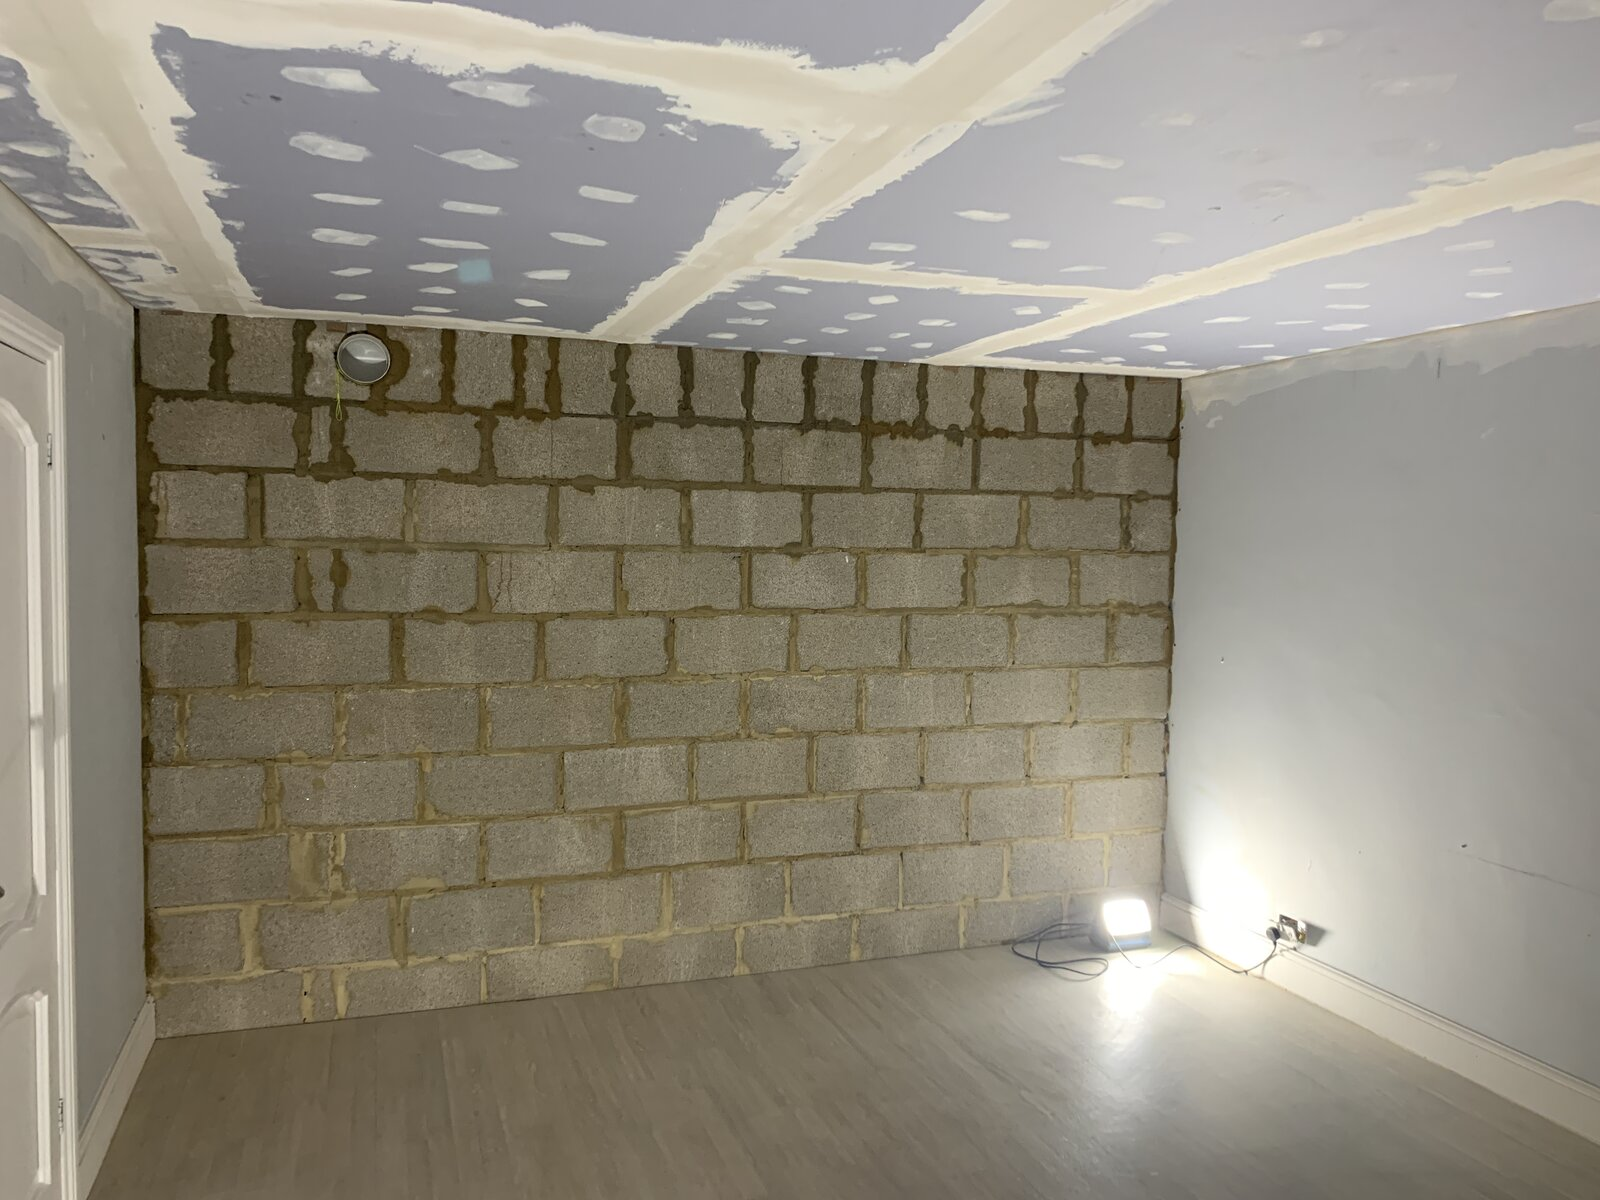 Finished wall and ceiling